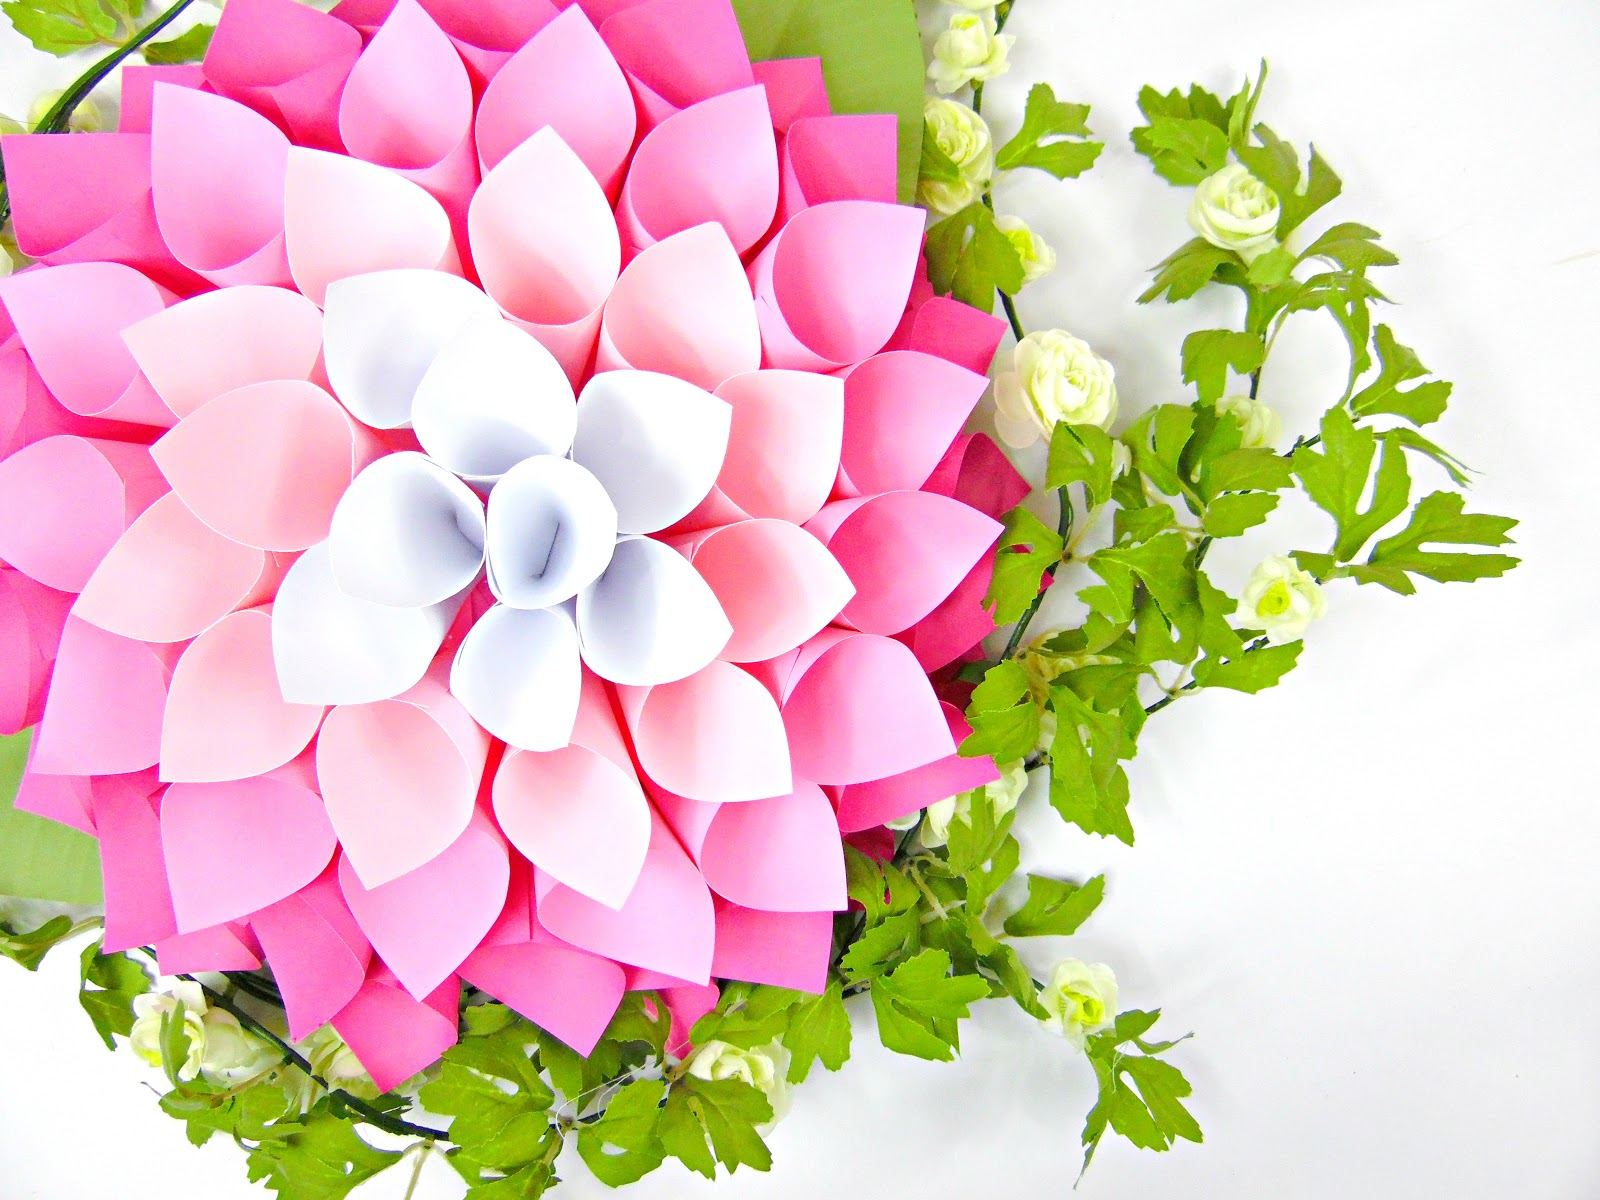 Diy giant dahlia paper flowers how to make large paper dahlias mightylinksfo